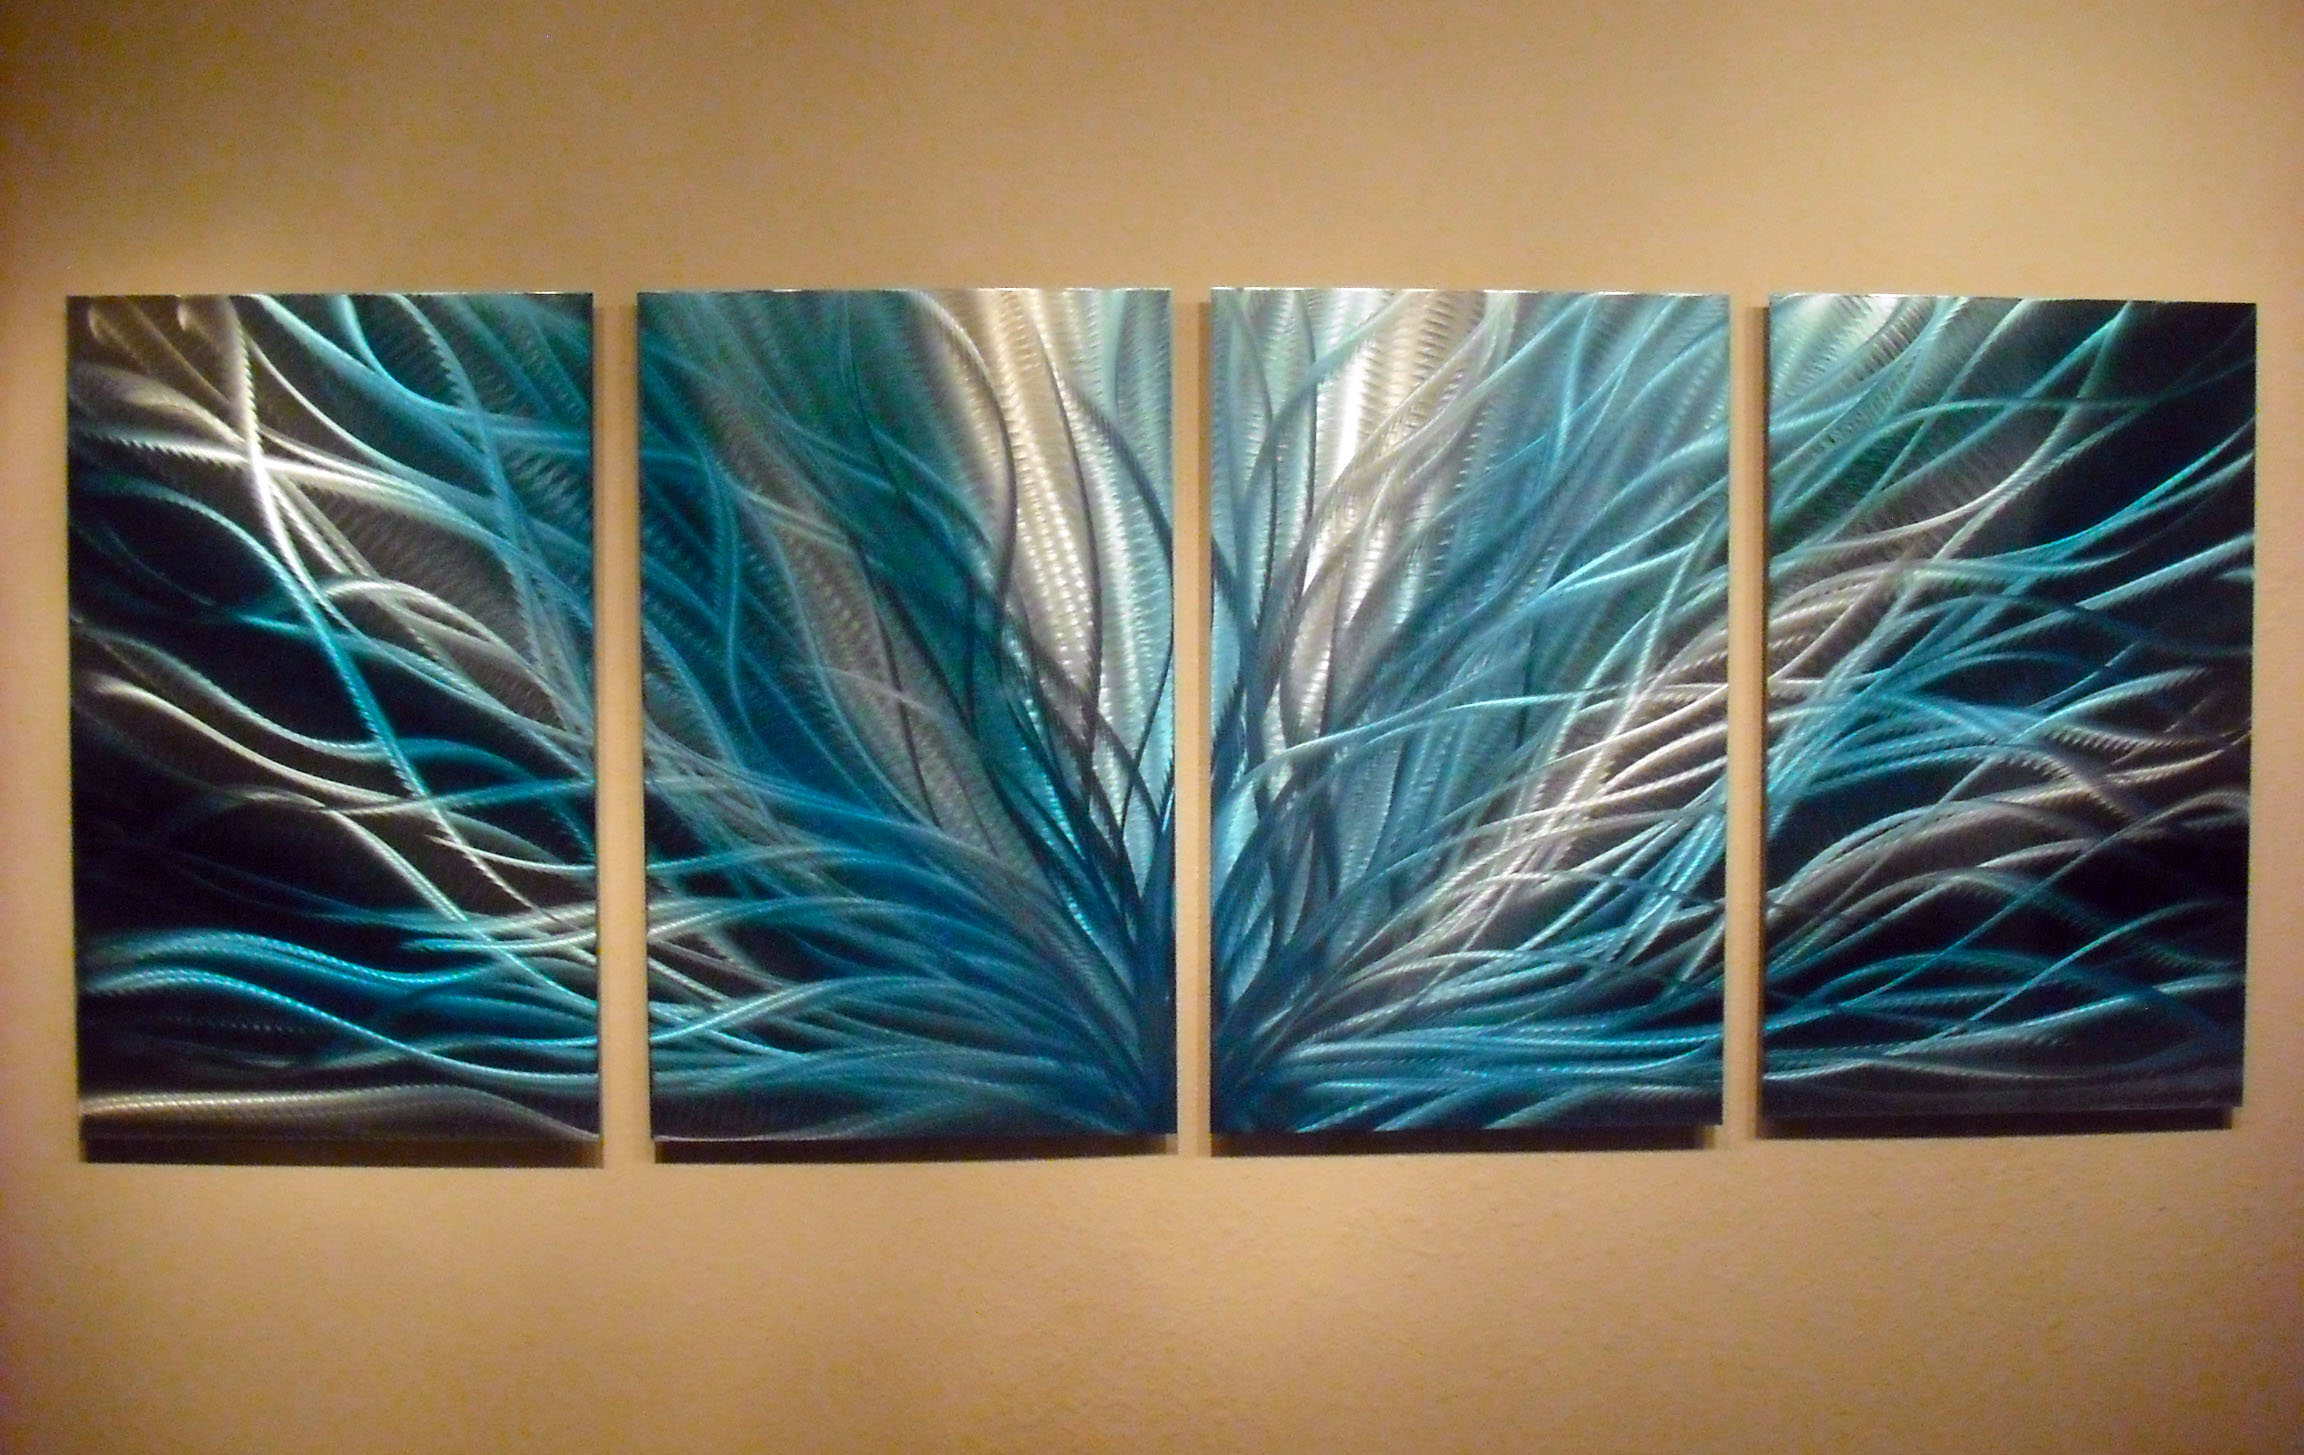 Teal Metal Wall Art Radiance In Blues Abstract Metal Wall Art Contemporary Modern